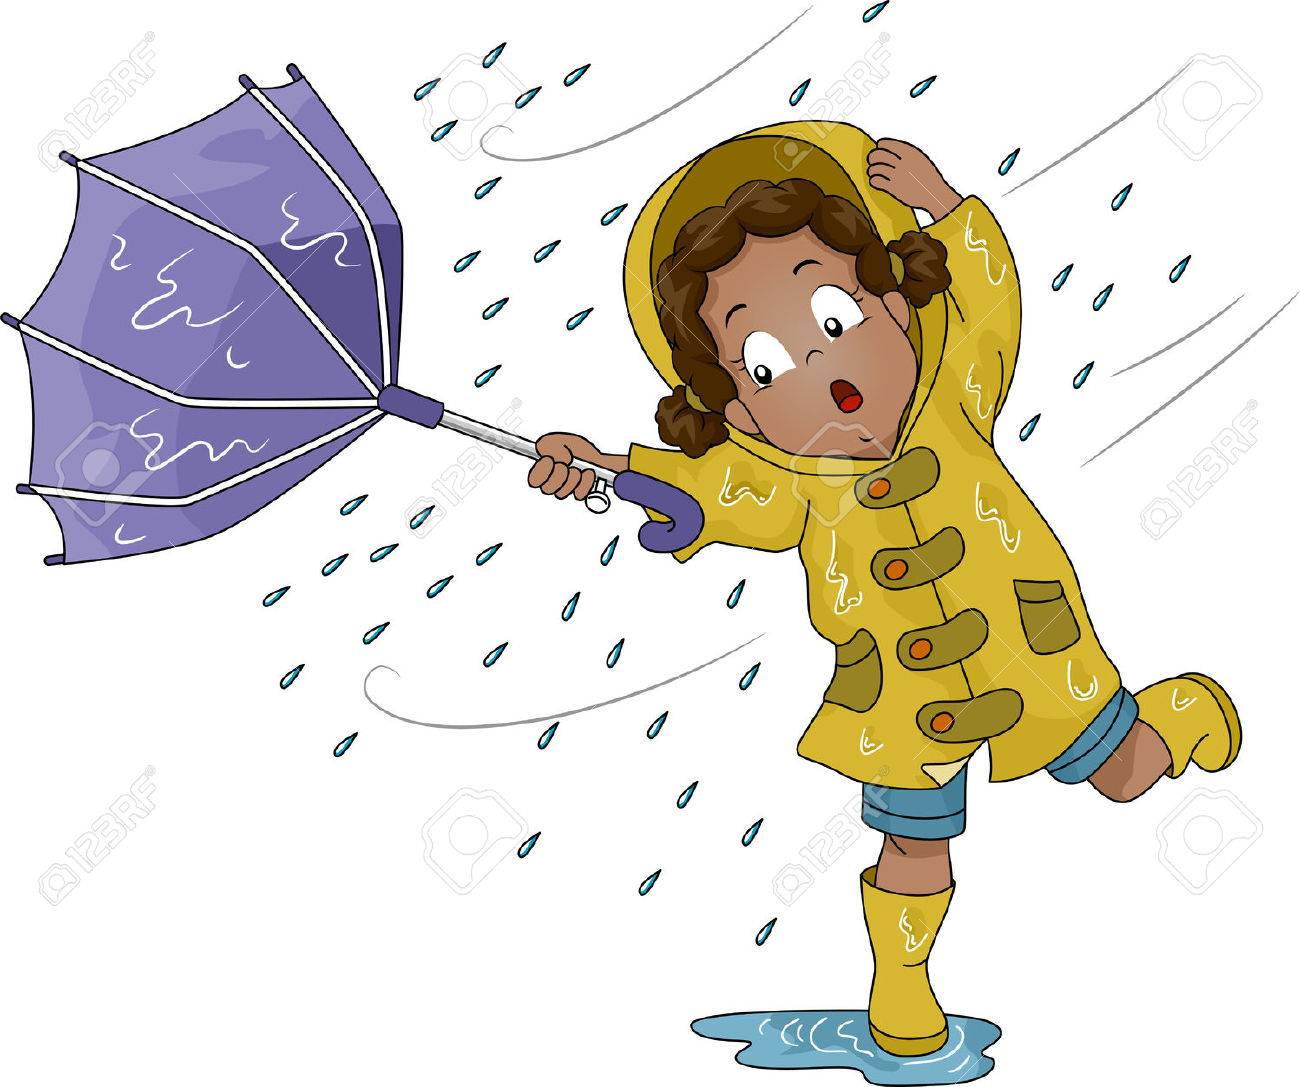 Illustration of a Little Girl Holding an Umbrella Upturned by Poweful Winds Stock Illustration - 26494090